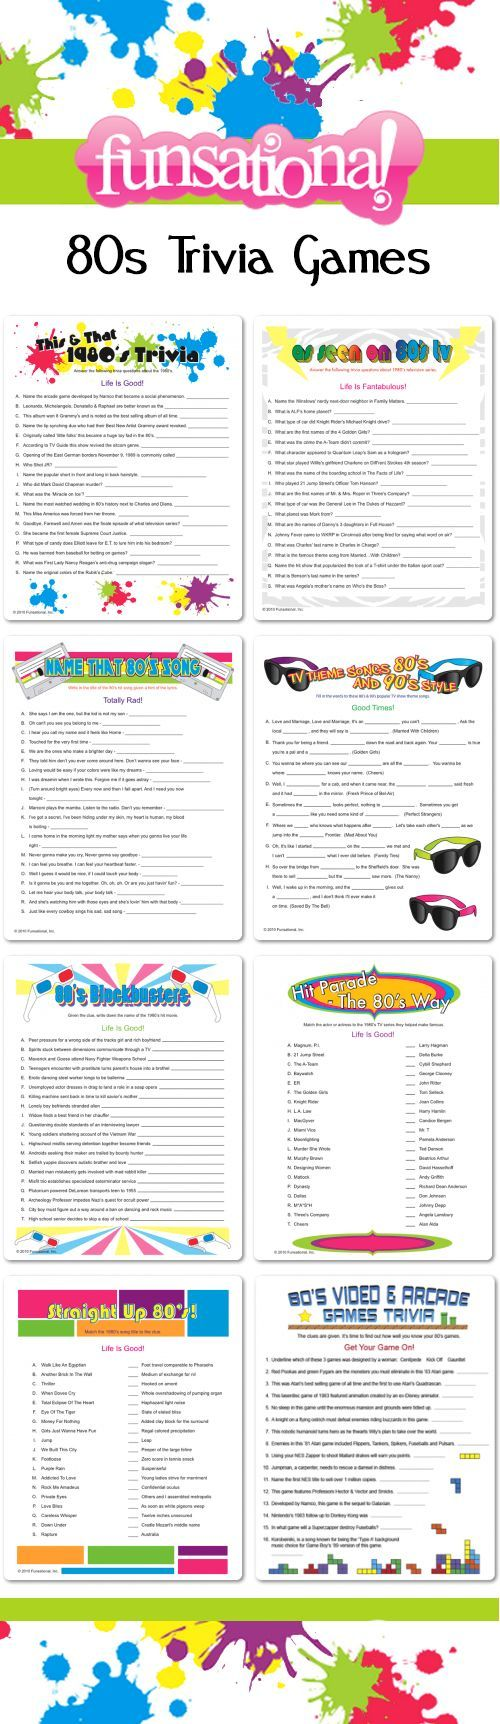 80s Trivia Games from Funsational. Personalize each one!